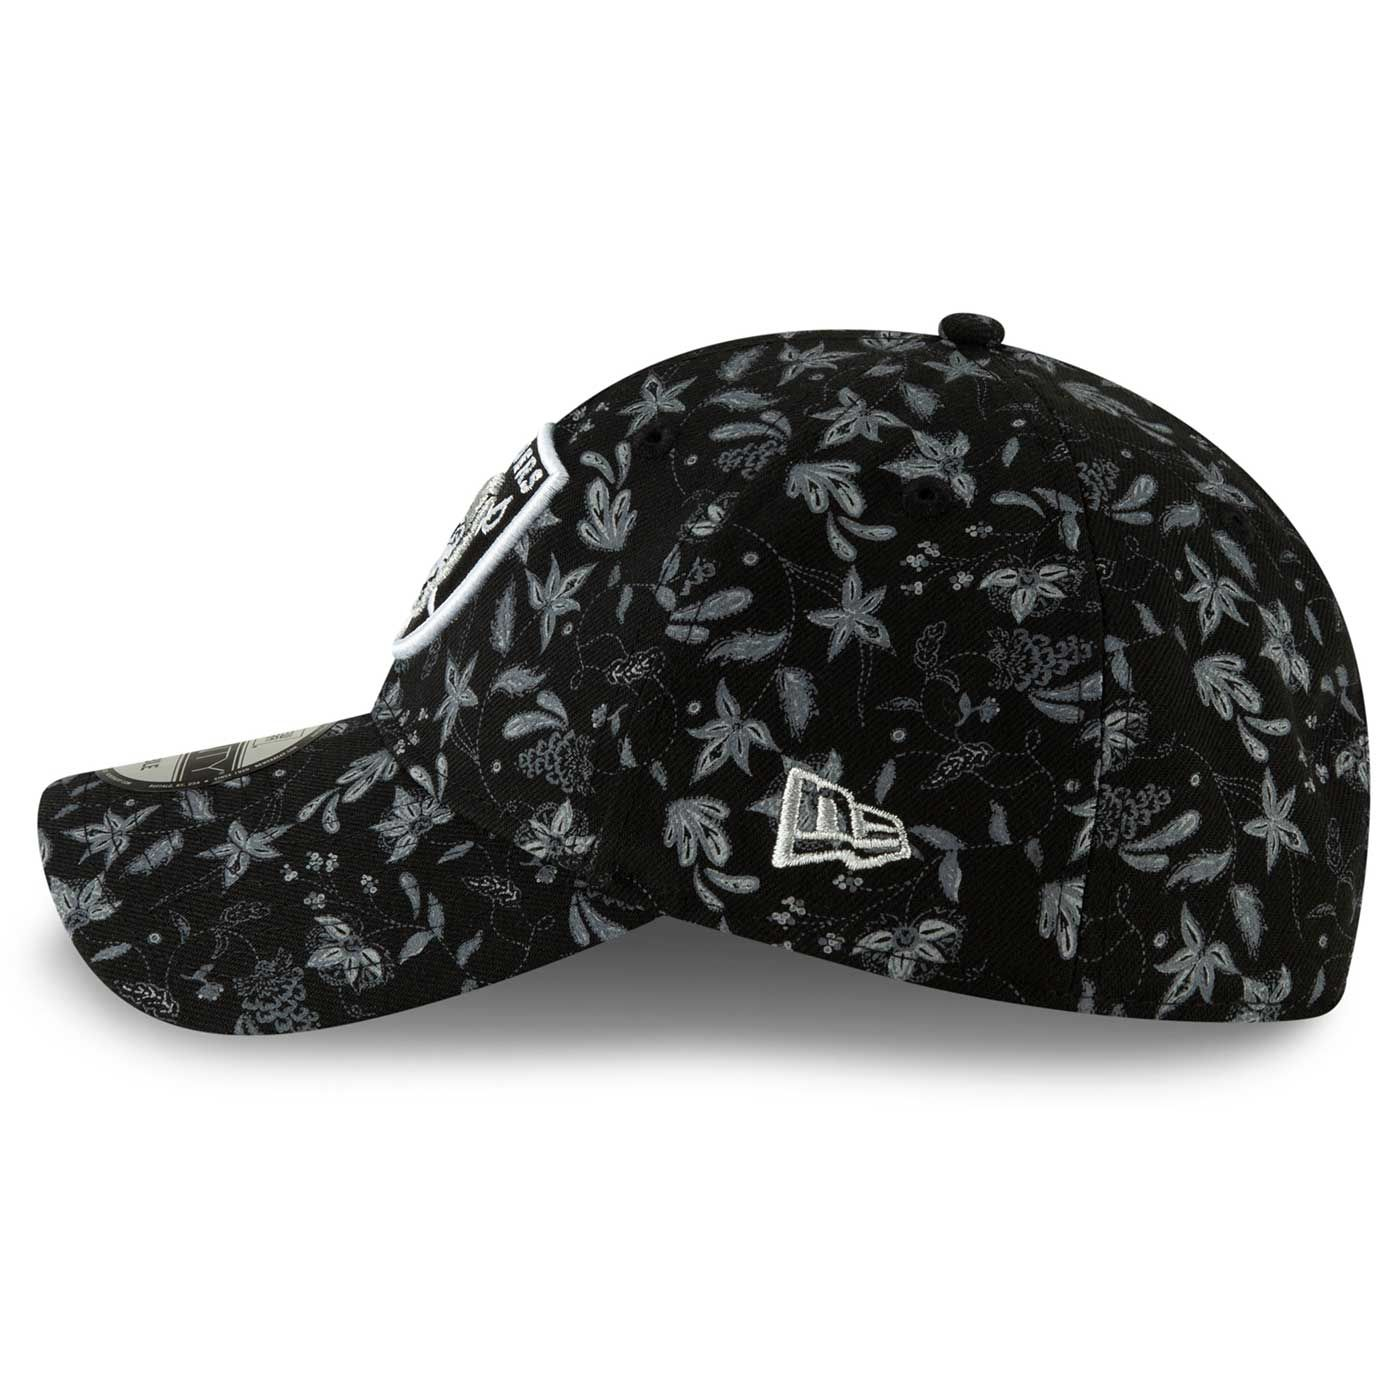 5c9dd580953 Raiders New Era 9Twenty Floral Print Cap